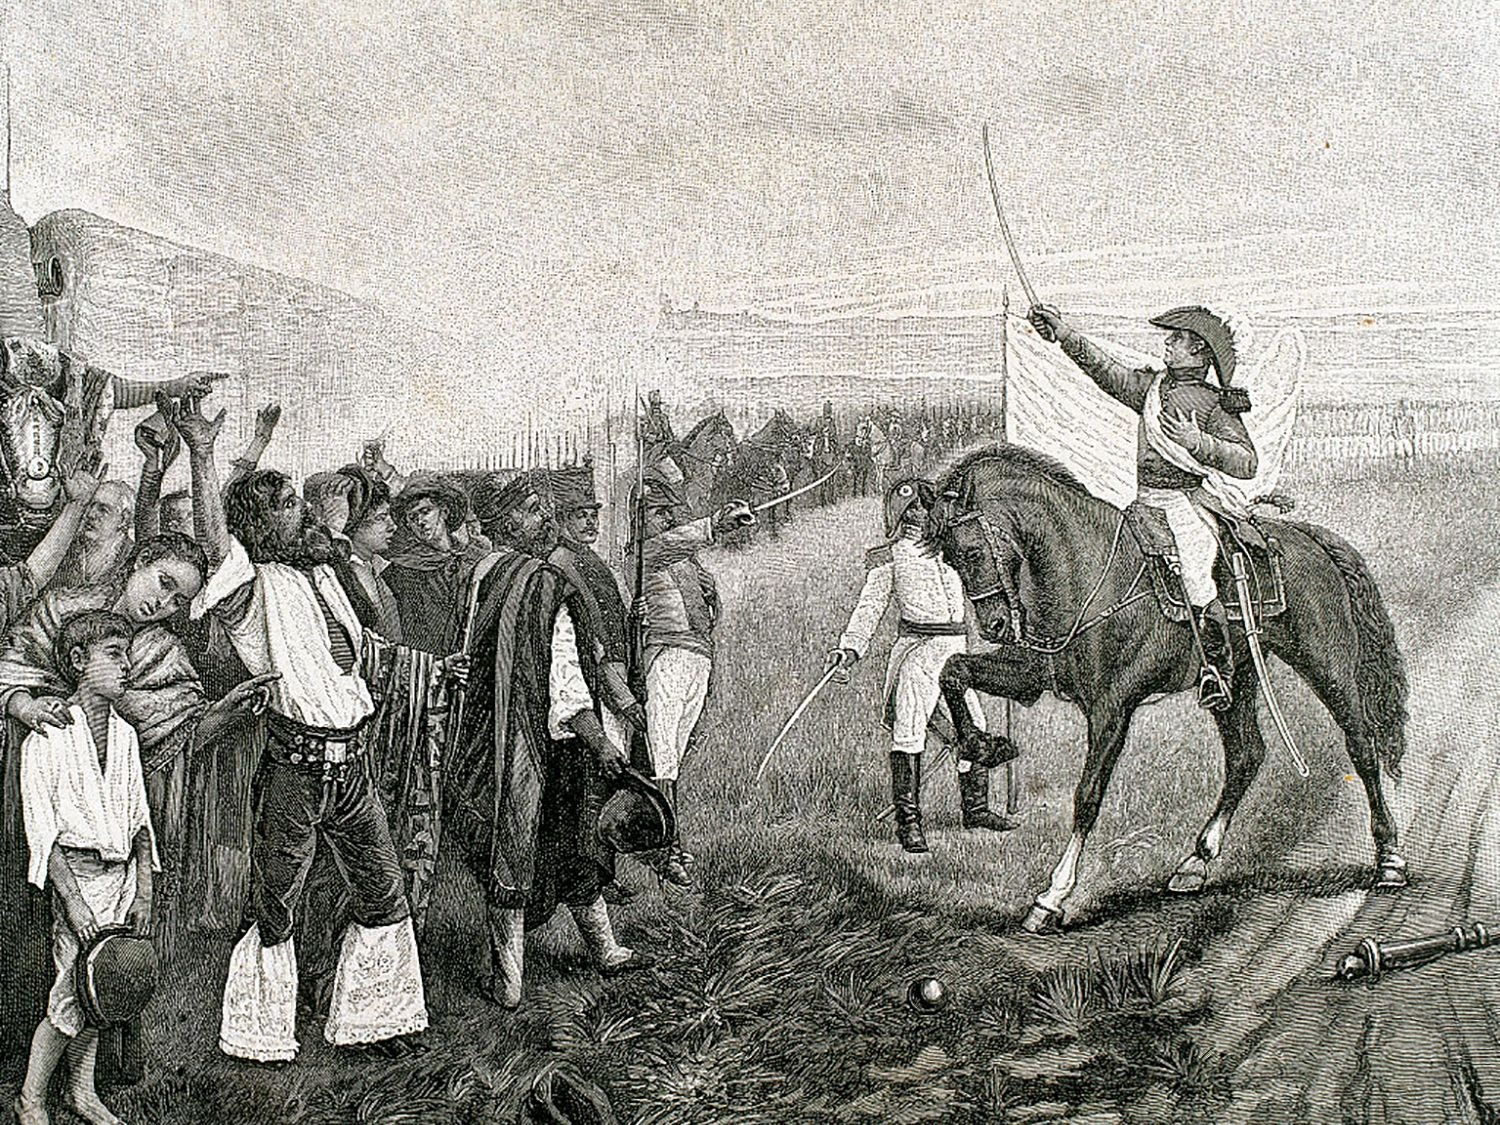 Colonial Argentina The History of Argentina/'s Colonization and Struggle for Independence